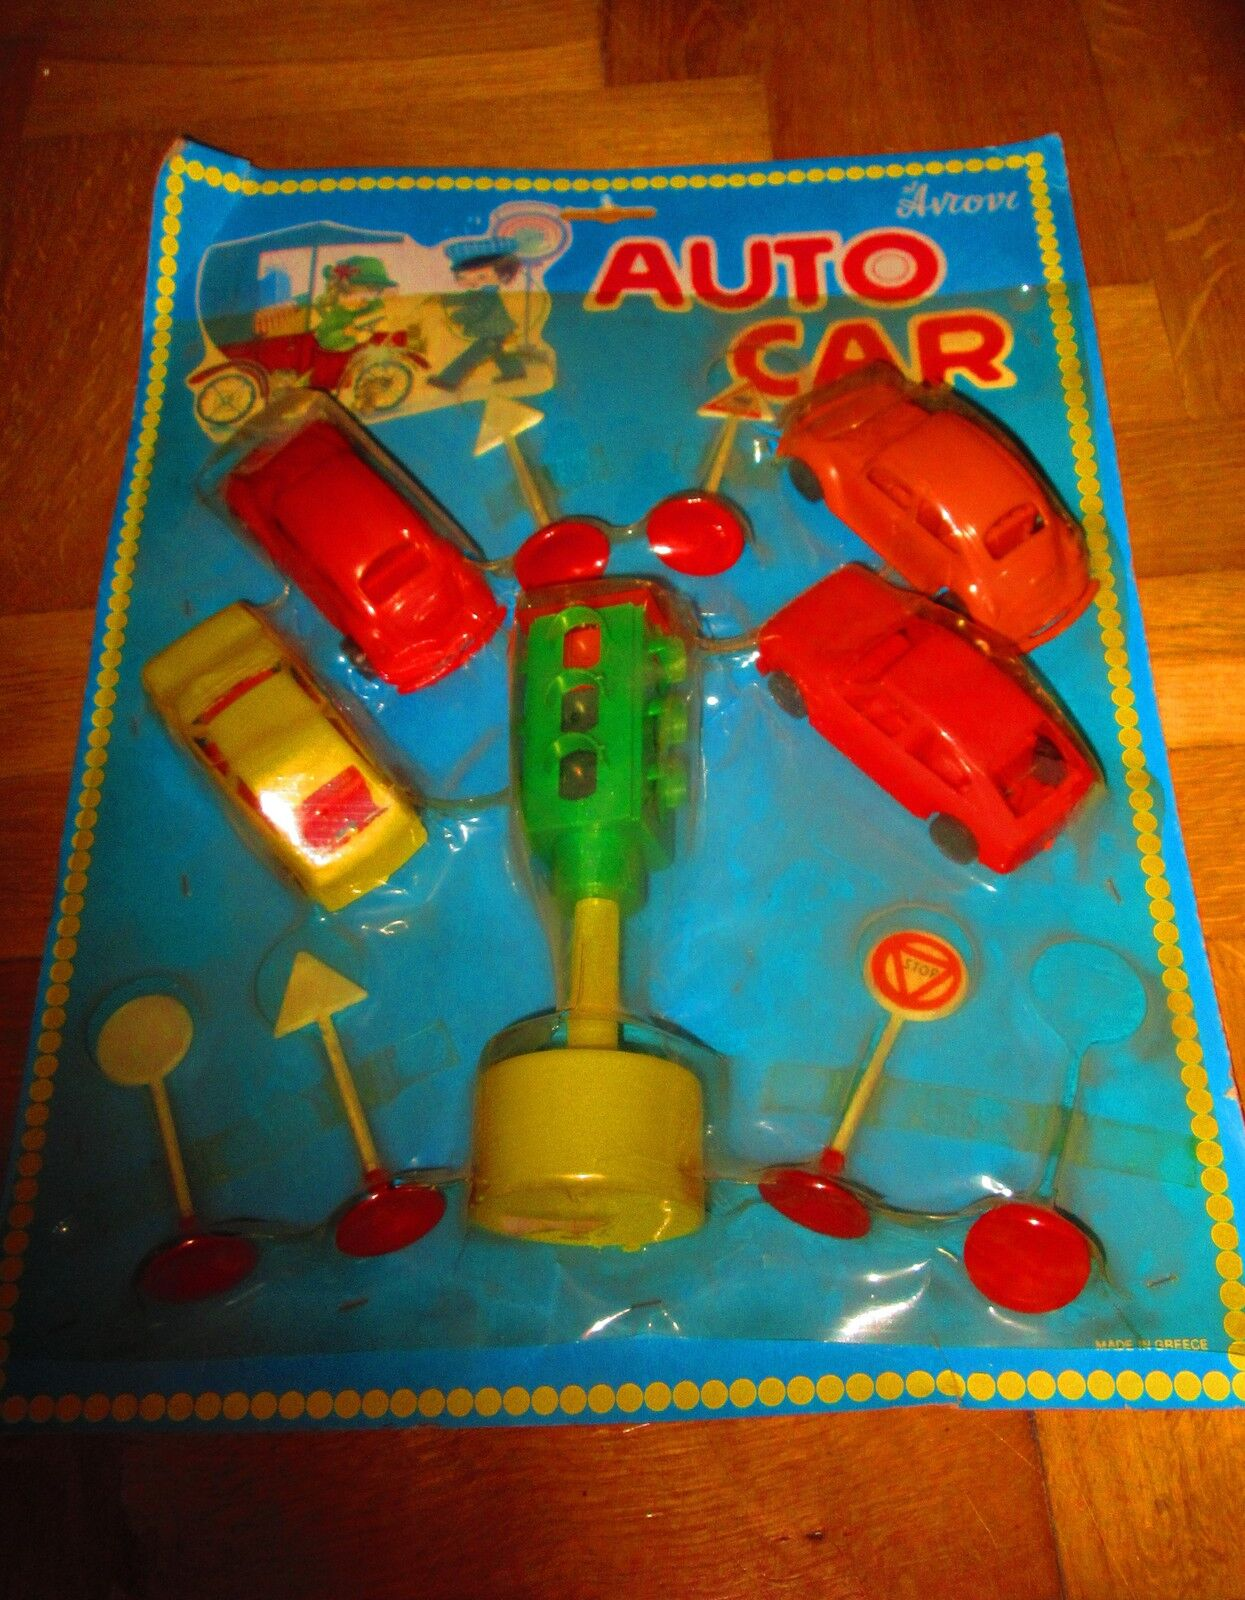 UNIQUE VINTAGE GREEK PLASTIC AUTO CAR SET - VW & ALFA ROMEO - ANTONI 70s MOC 2